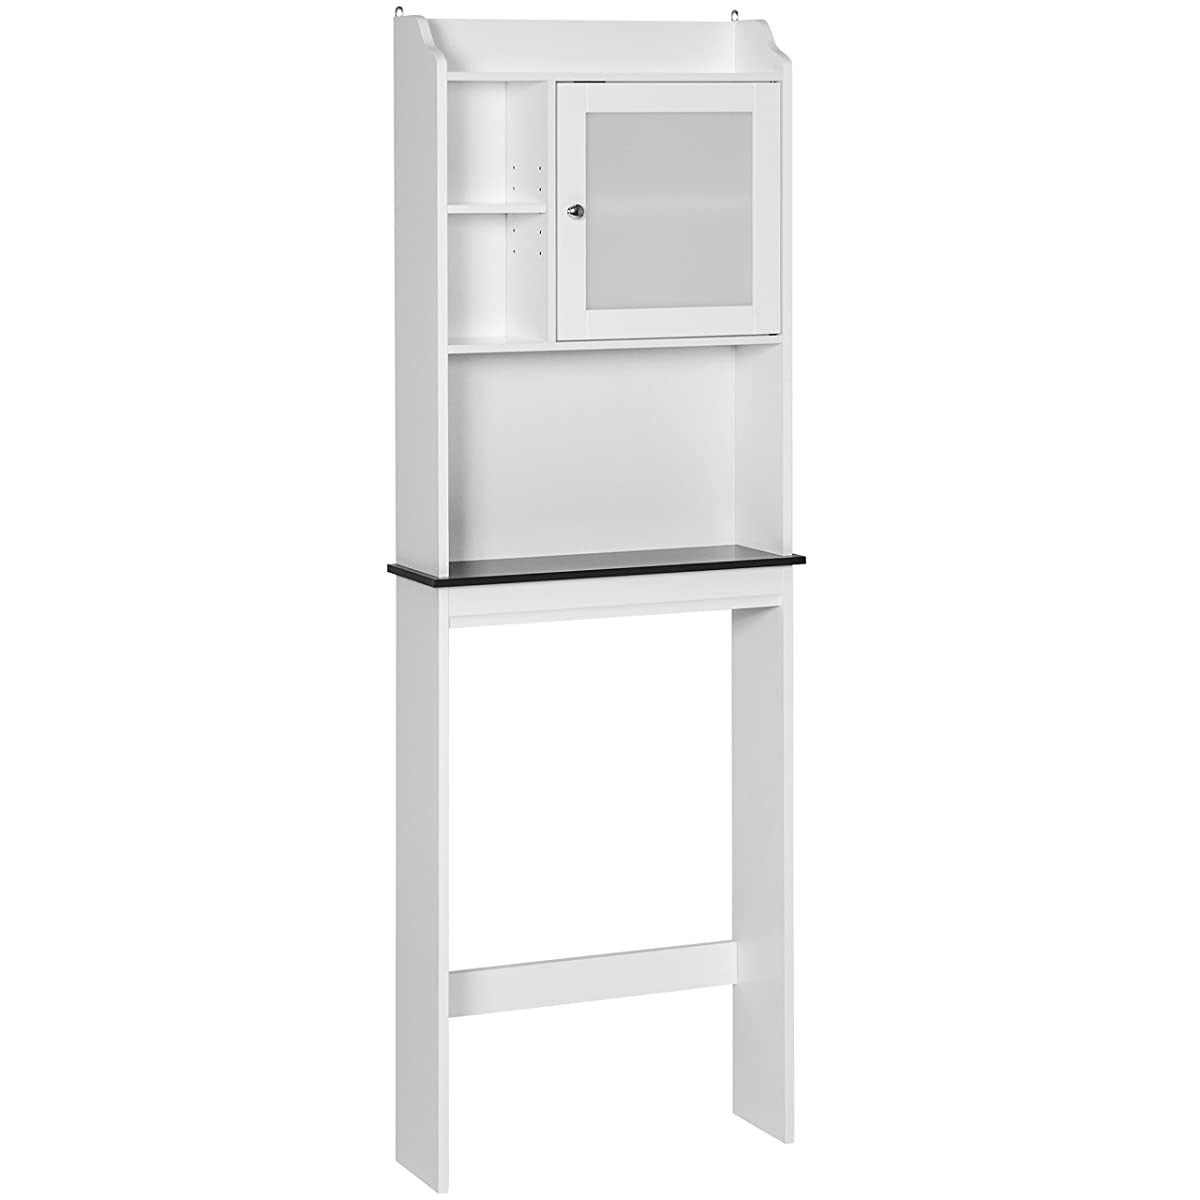 Best Choice Products Bathroom Over-the-Toilet Space Saver Storage Cabinet- White